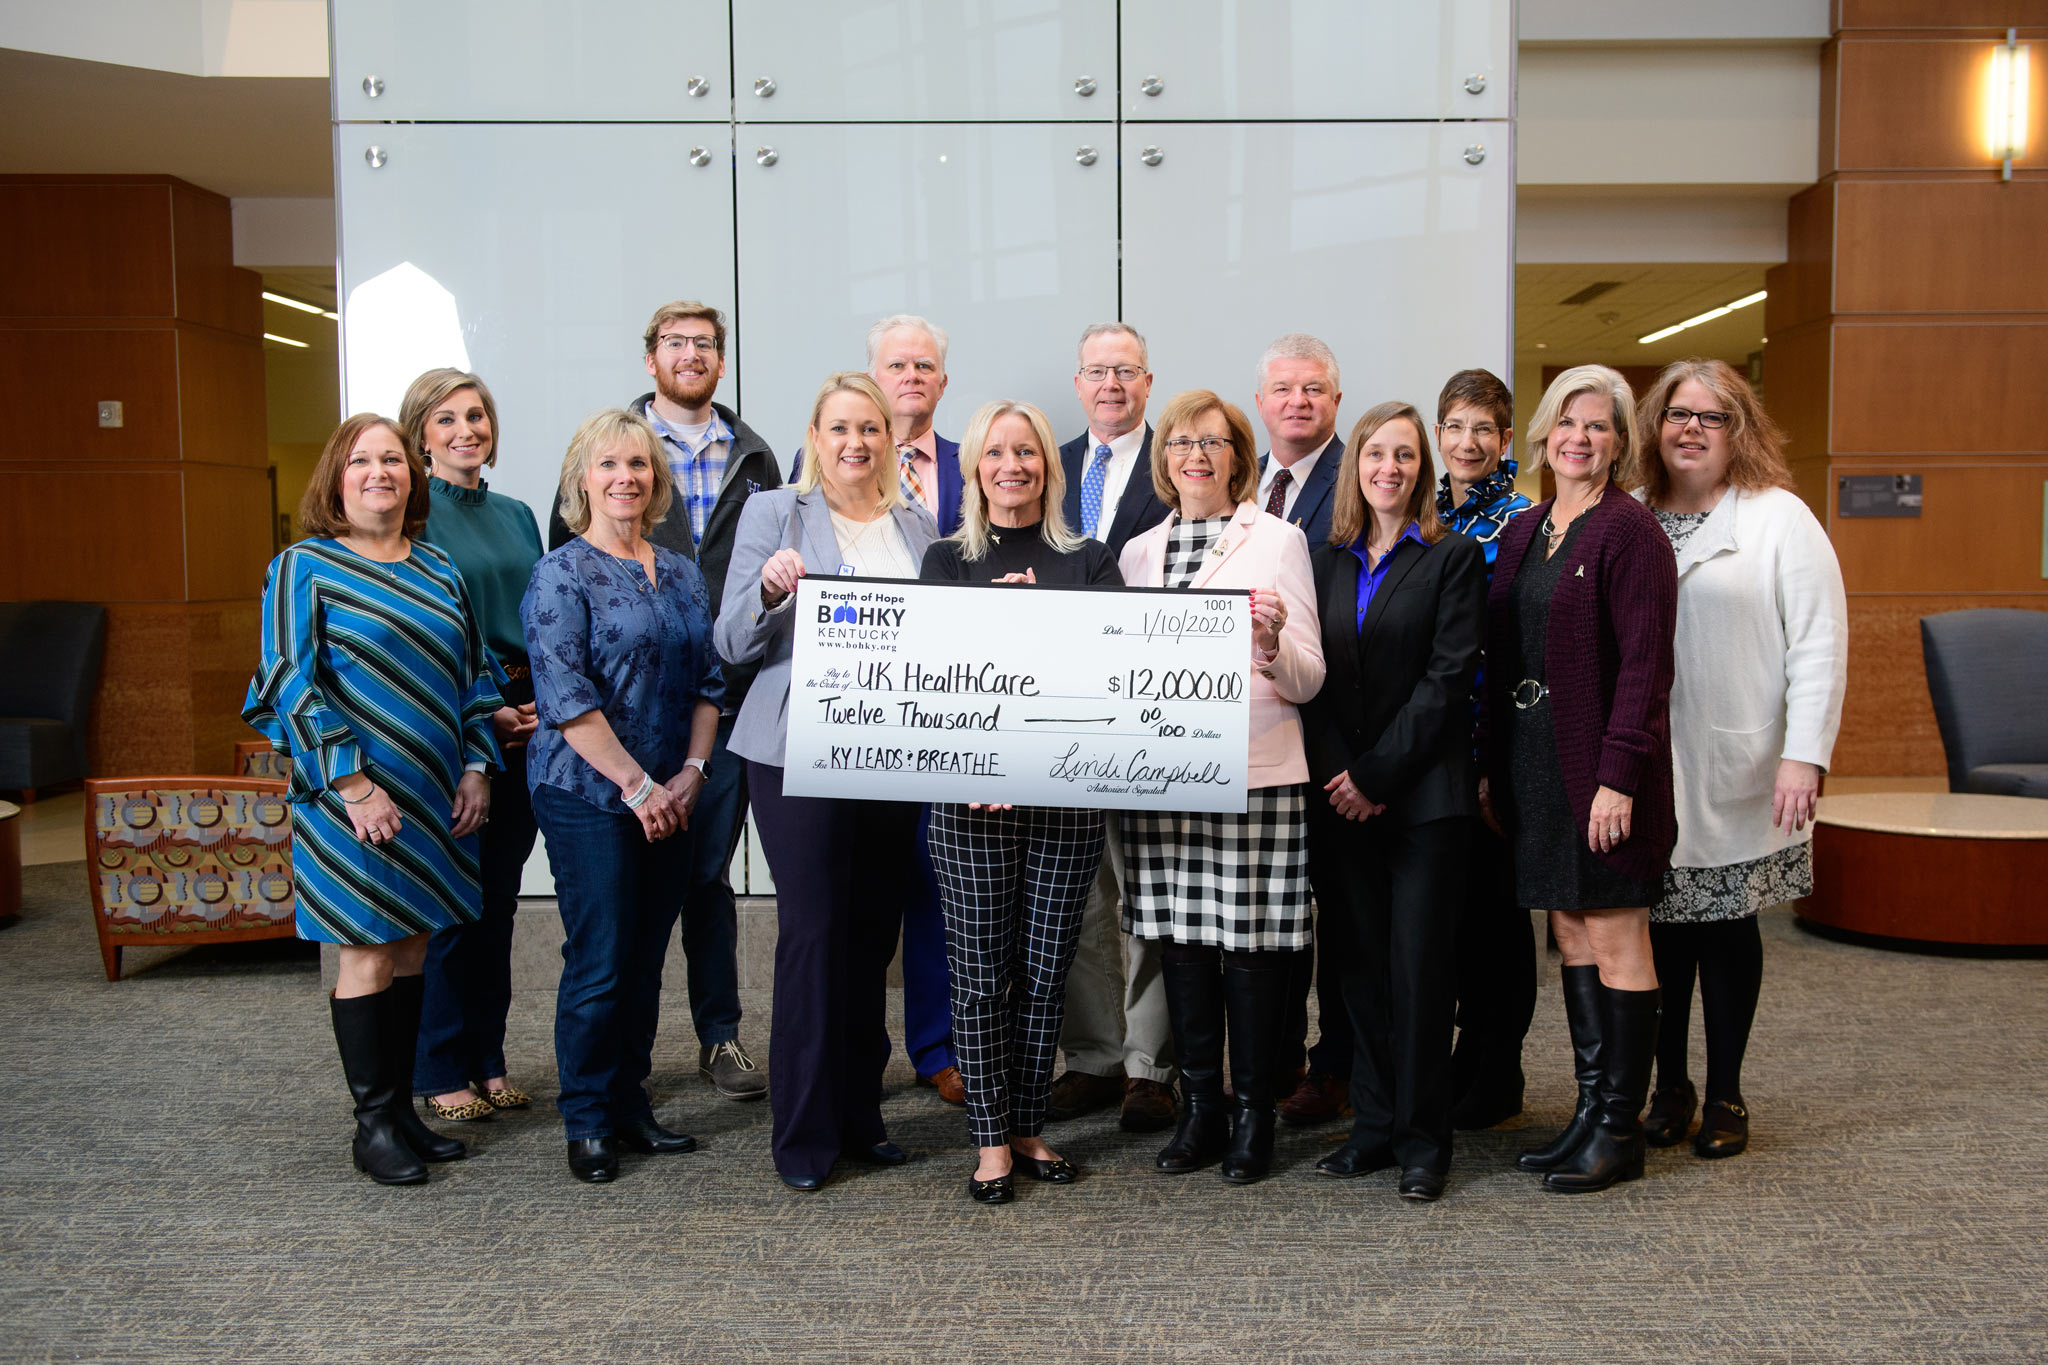 Lindi makes a $12,000 donation on behalf of KY LEADS & BREATHE to UK HealthCare.